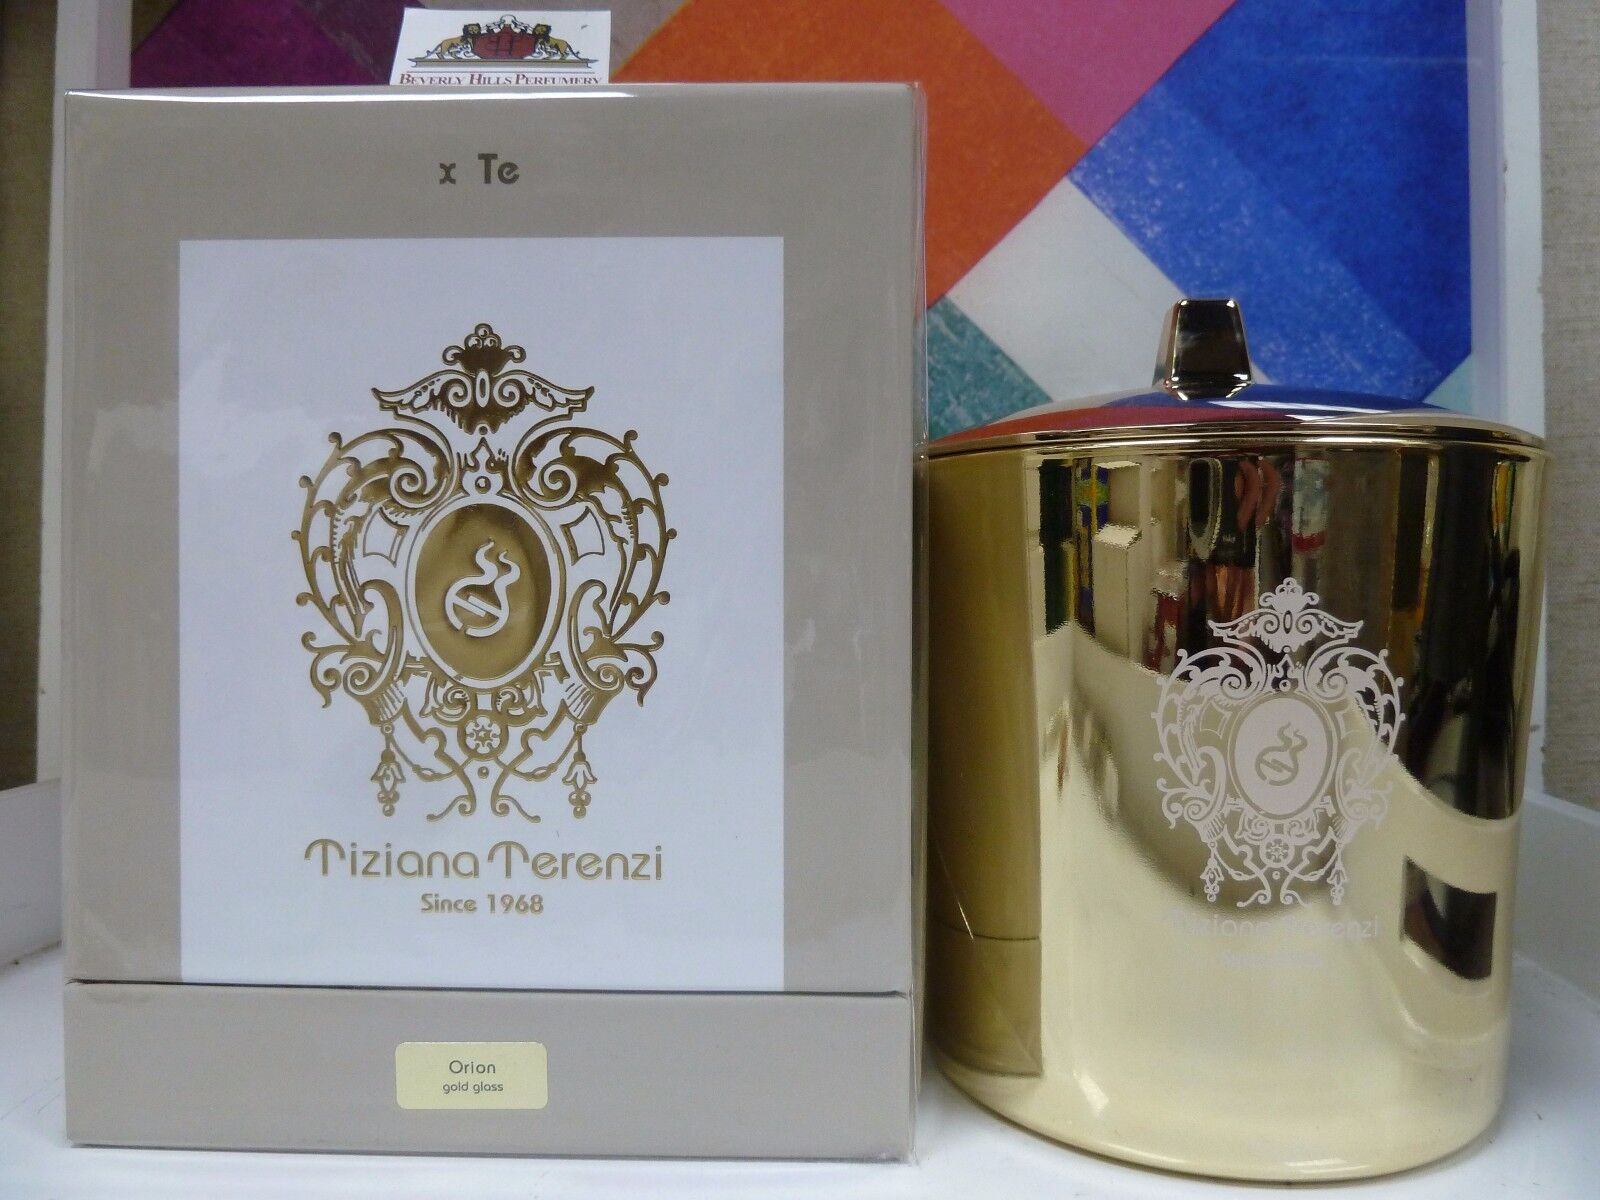 TIZIANA TERENZI ORION gold GLASS SCENTED CANDLE 35.3 OZ   1000 G NEW, SEALED